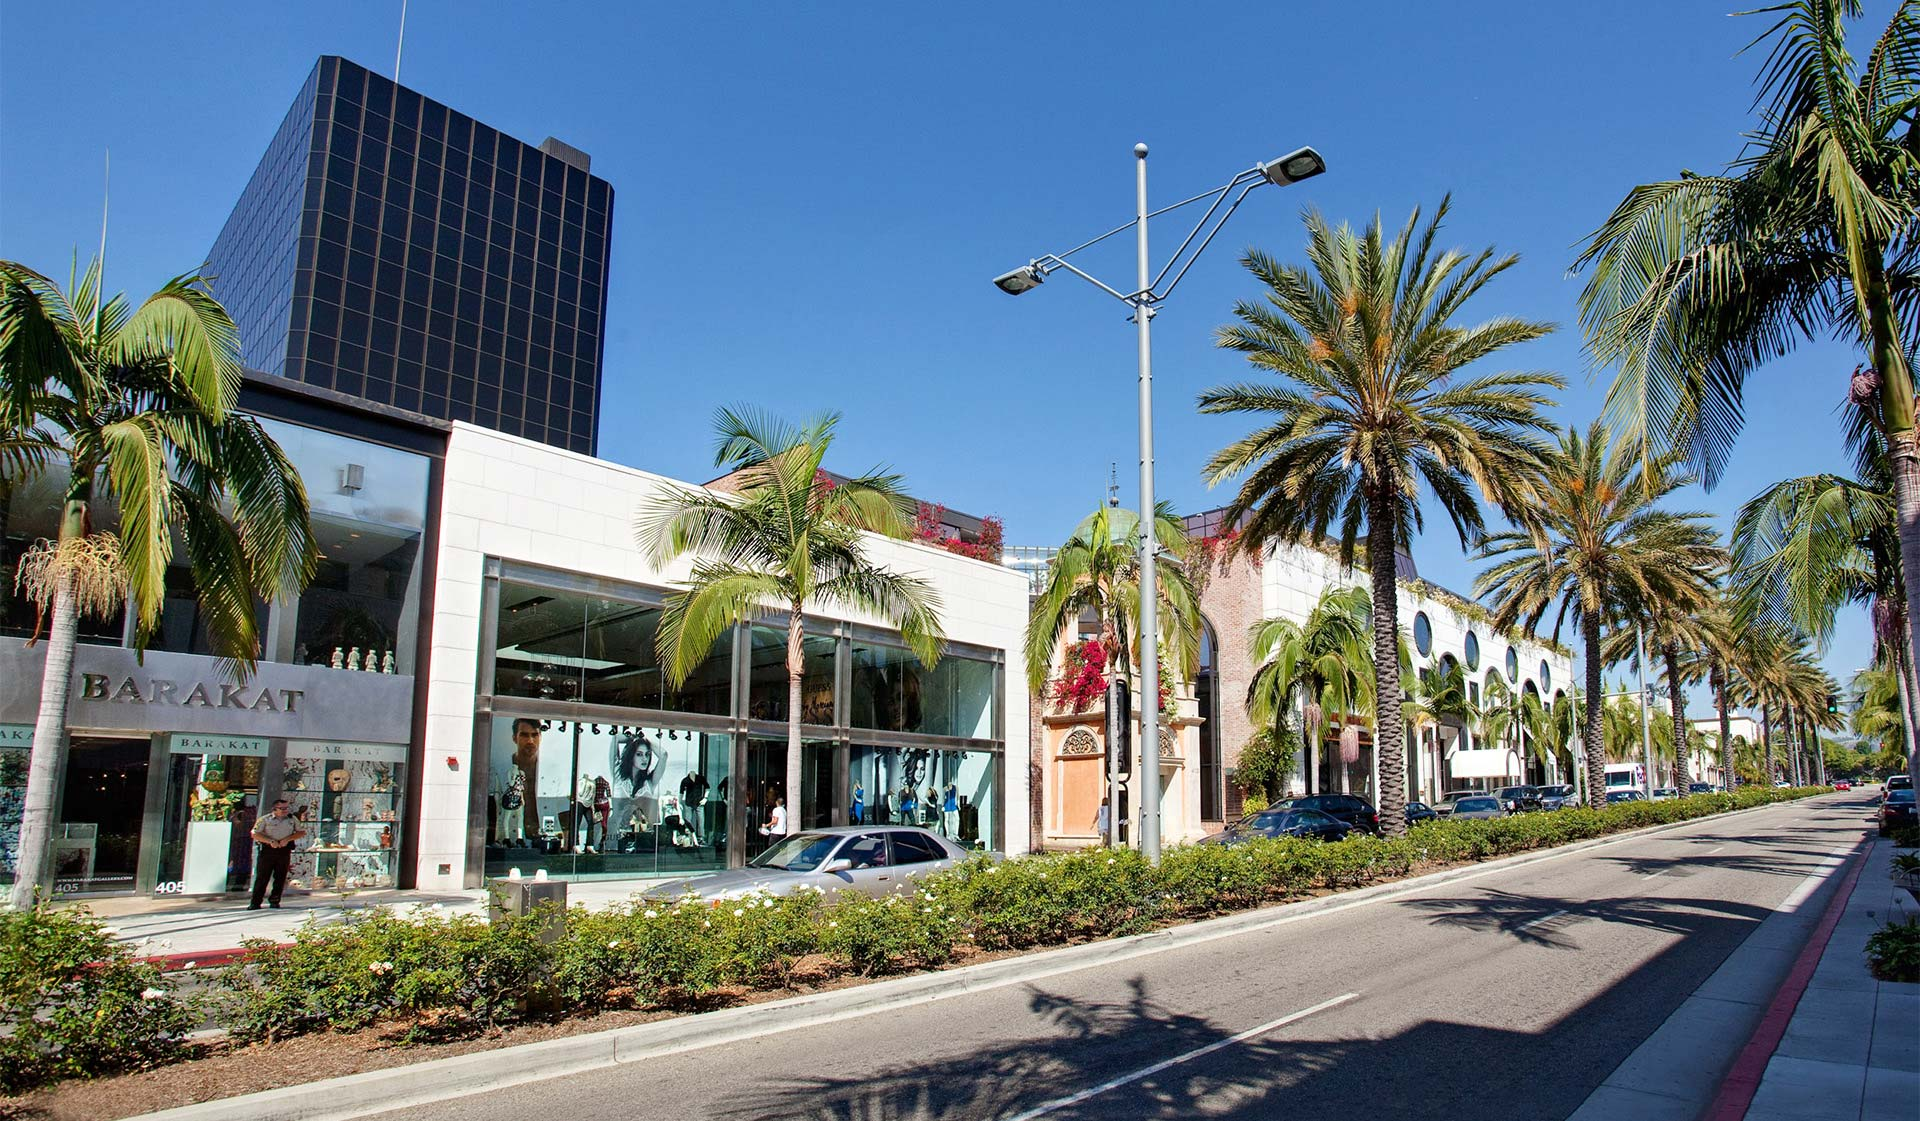 Palazzo West  - Los Angeles, CA - Shopping and Eateries on Rodeo Drive